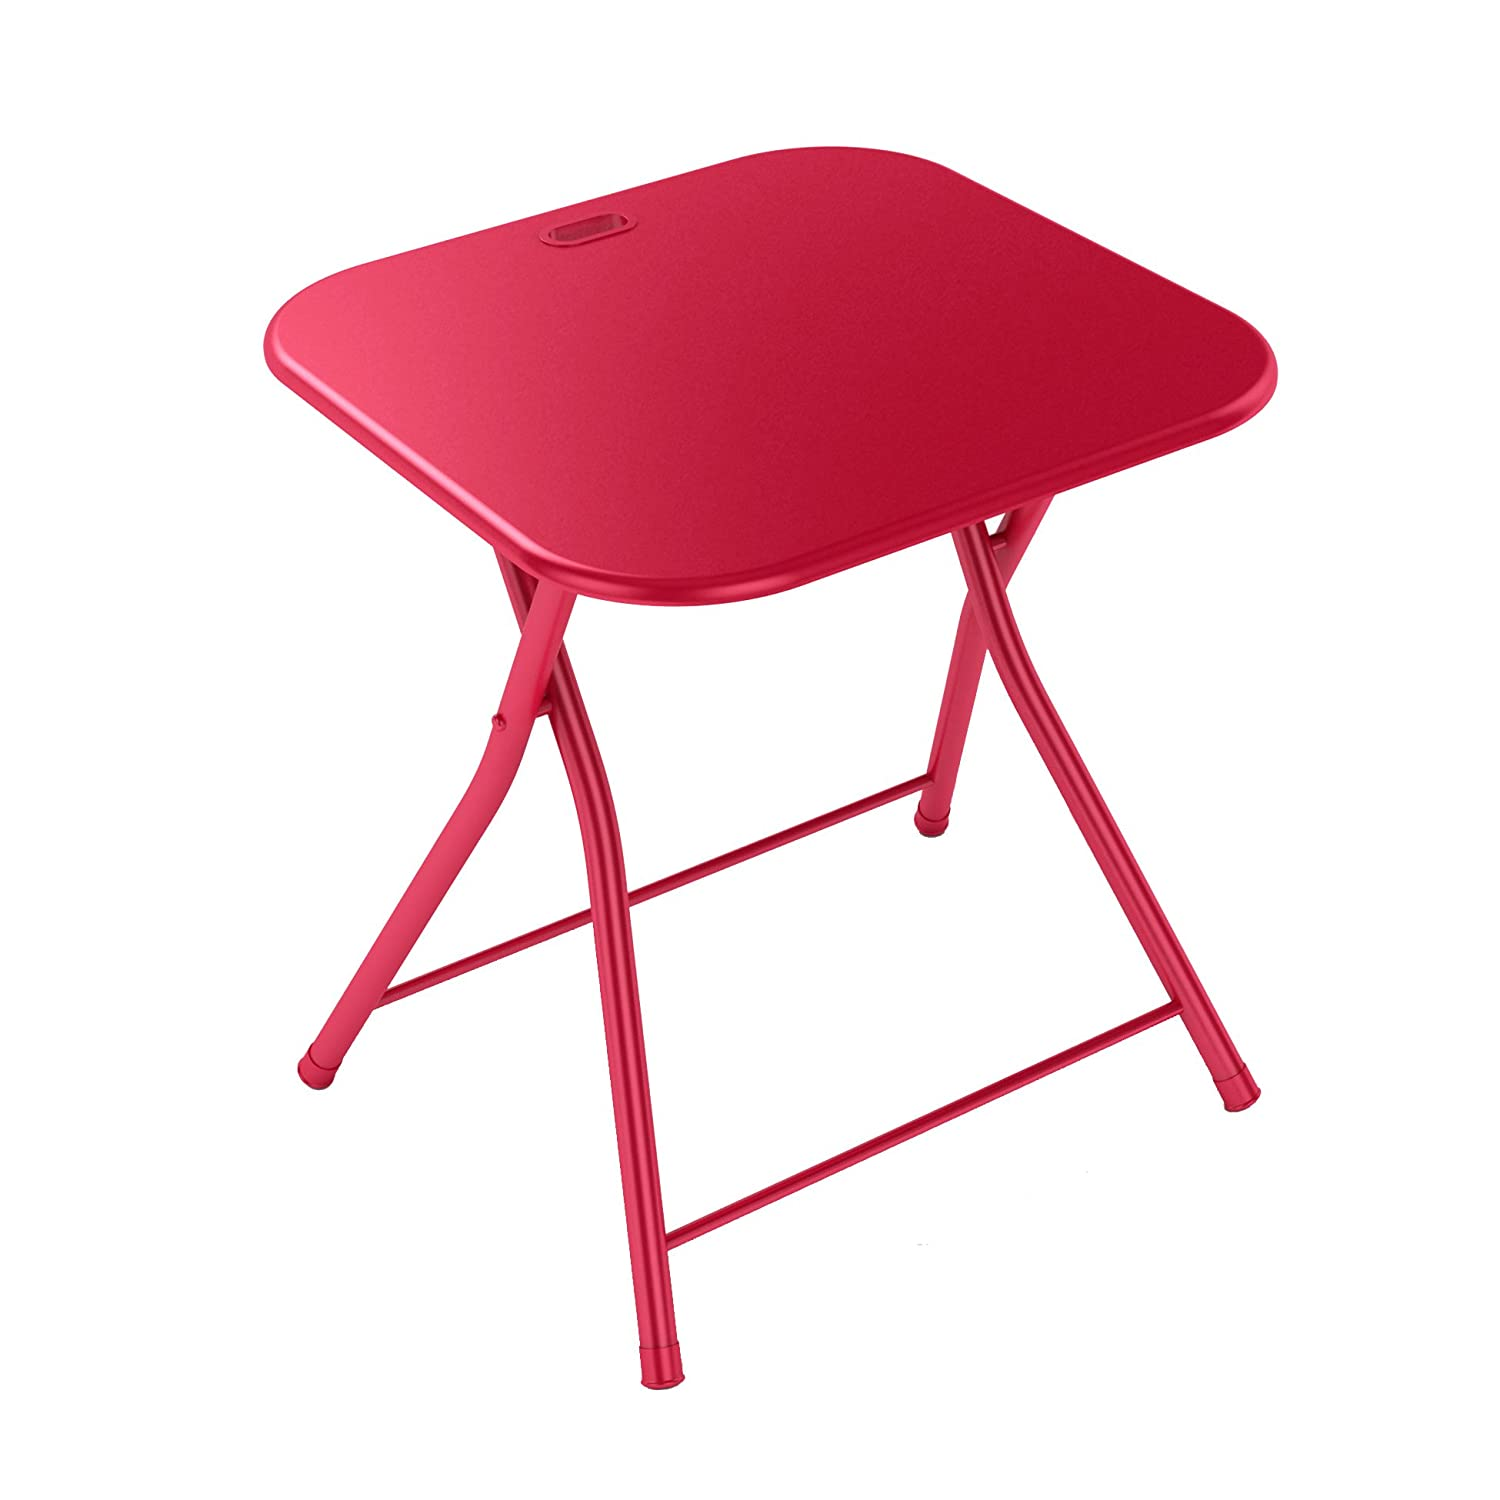 Amazon dar Living Folding Table with Handle Red Kitchen